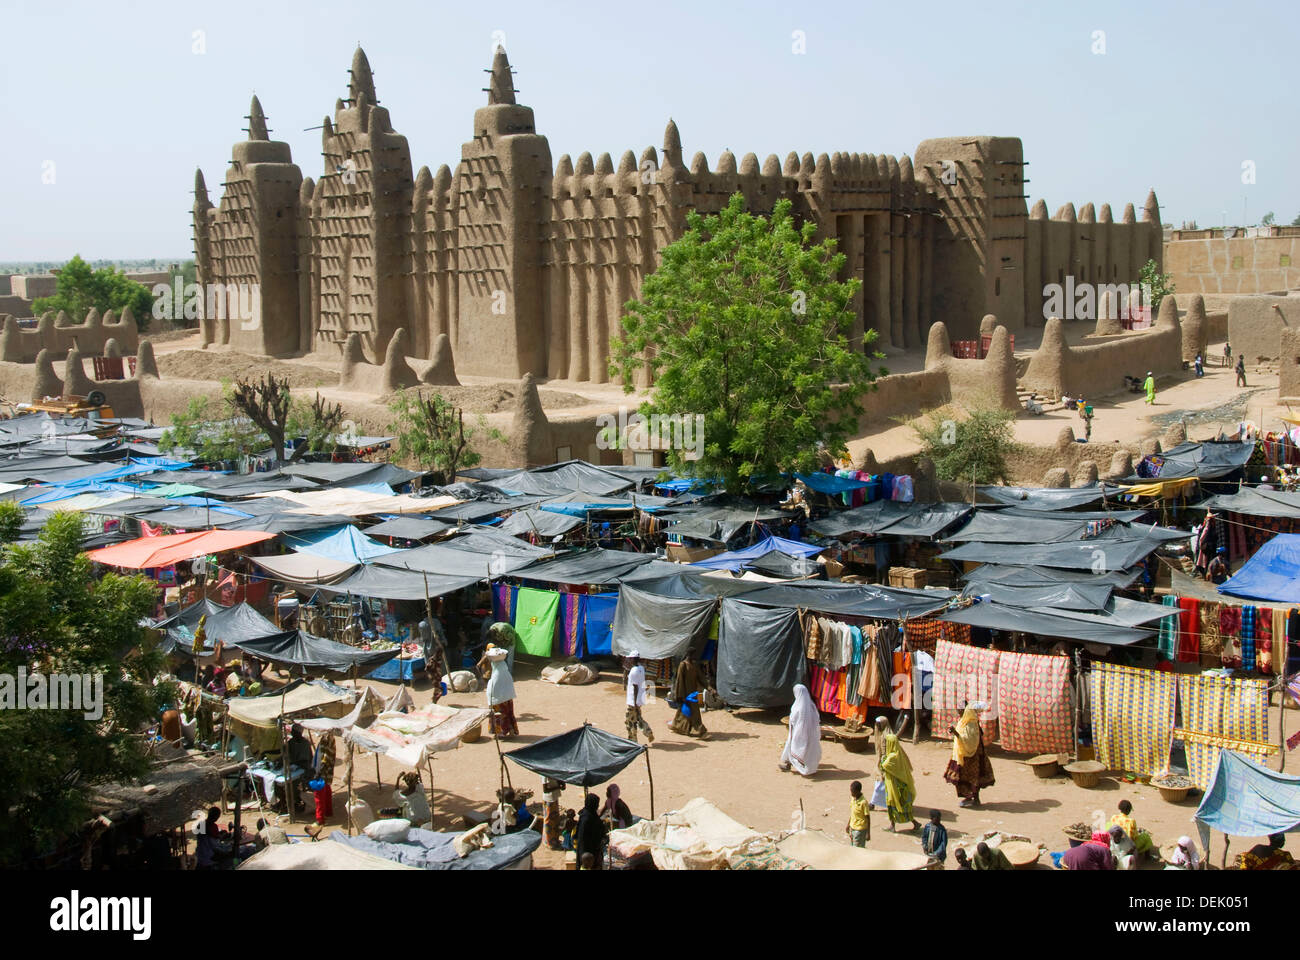 Great Mosque of Djenné and monday market. Djenné. Mopti region. Niger Inland Delta. Mali. West Africa. Stock Photo